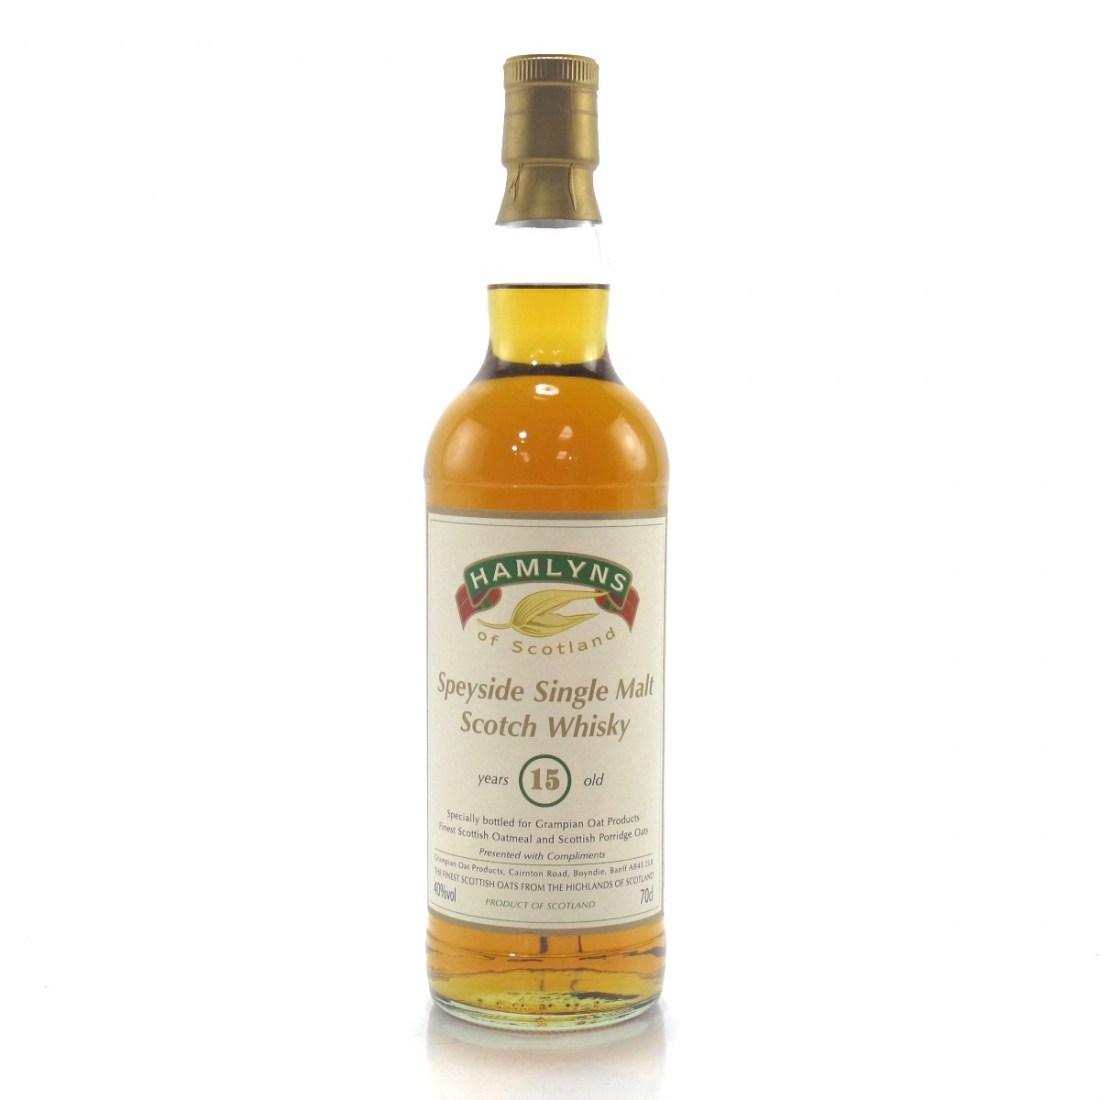 Hamlyns 15 Year Old Speyside Single Malt Grampian Oat Products